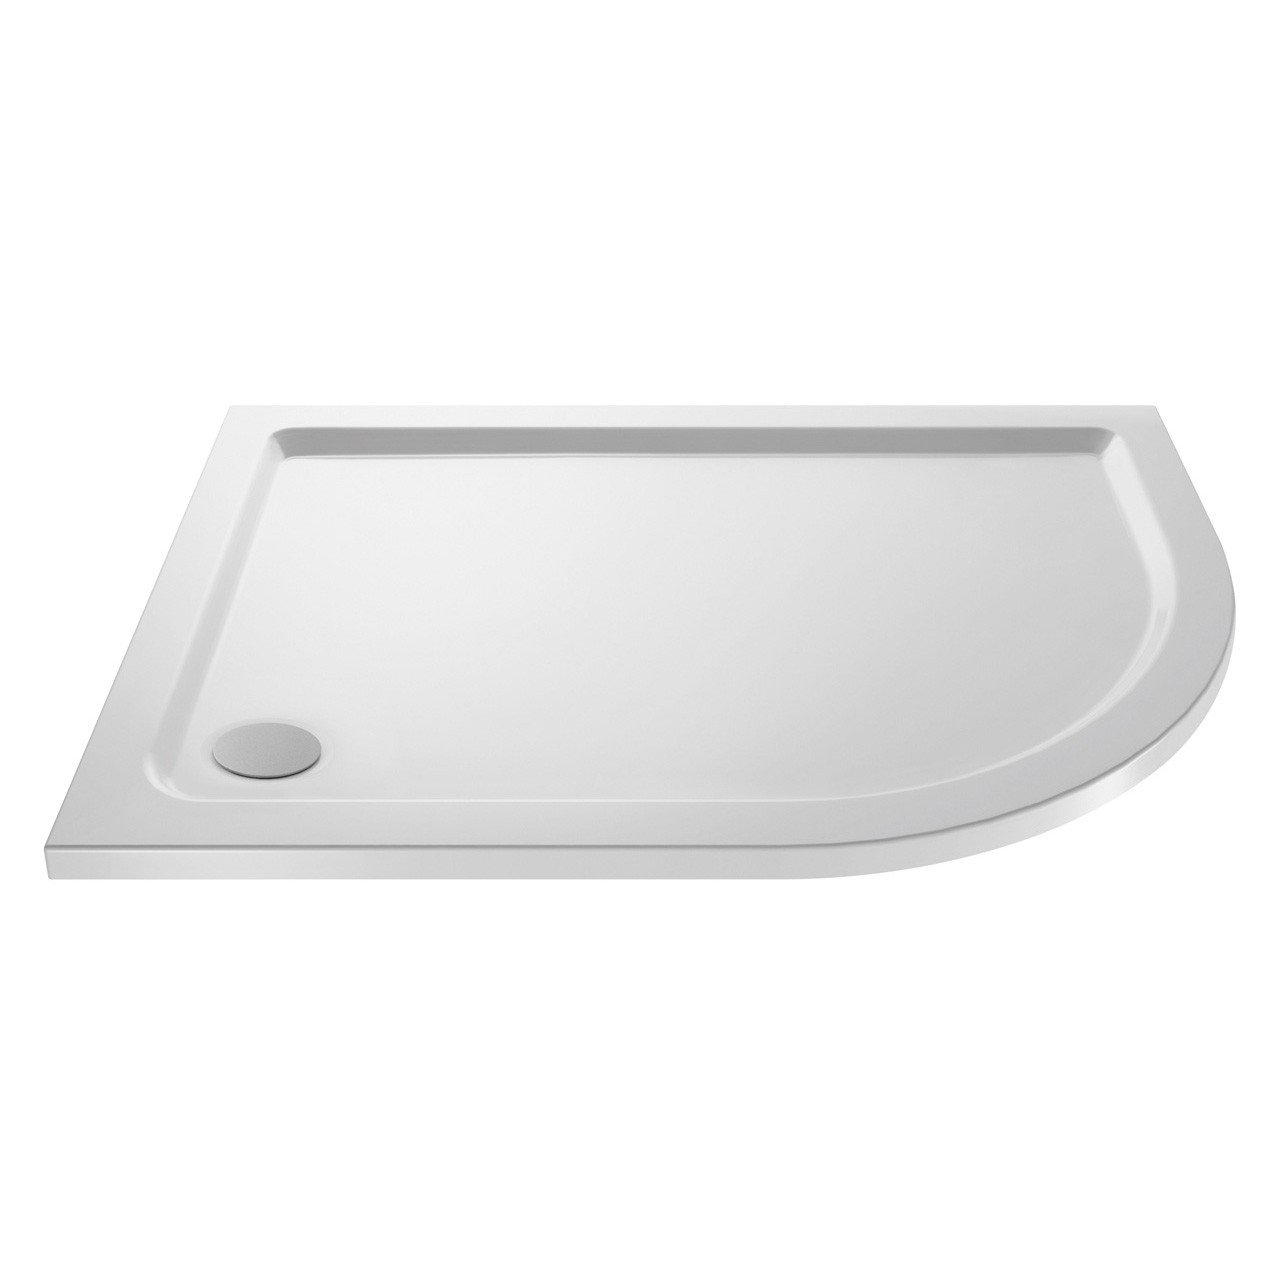 Premier Pearlstone Right Hand Offset Shower Tray 1000mm x 900mm x 40mm - NTP111